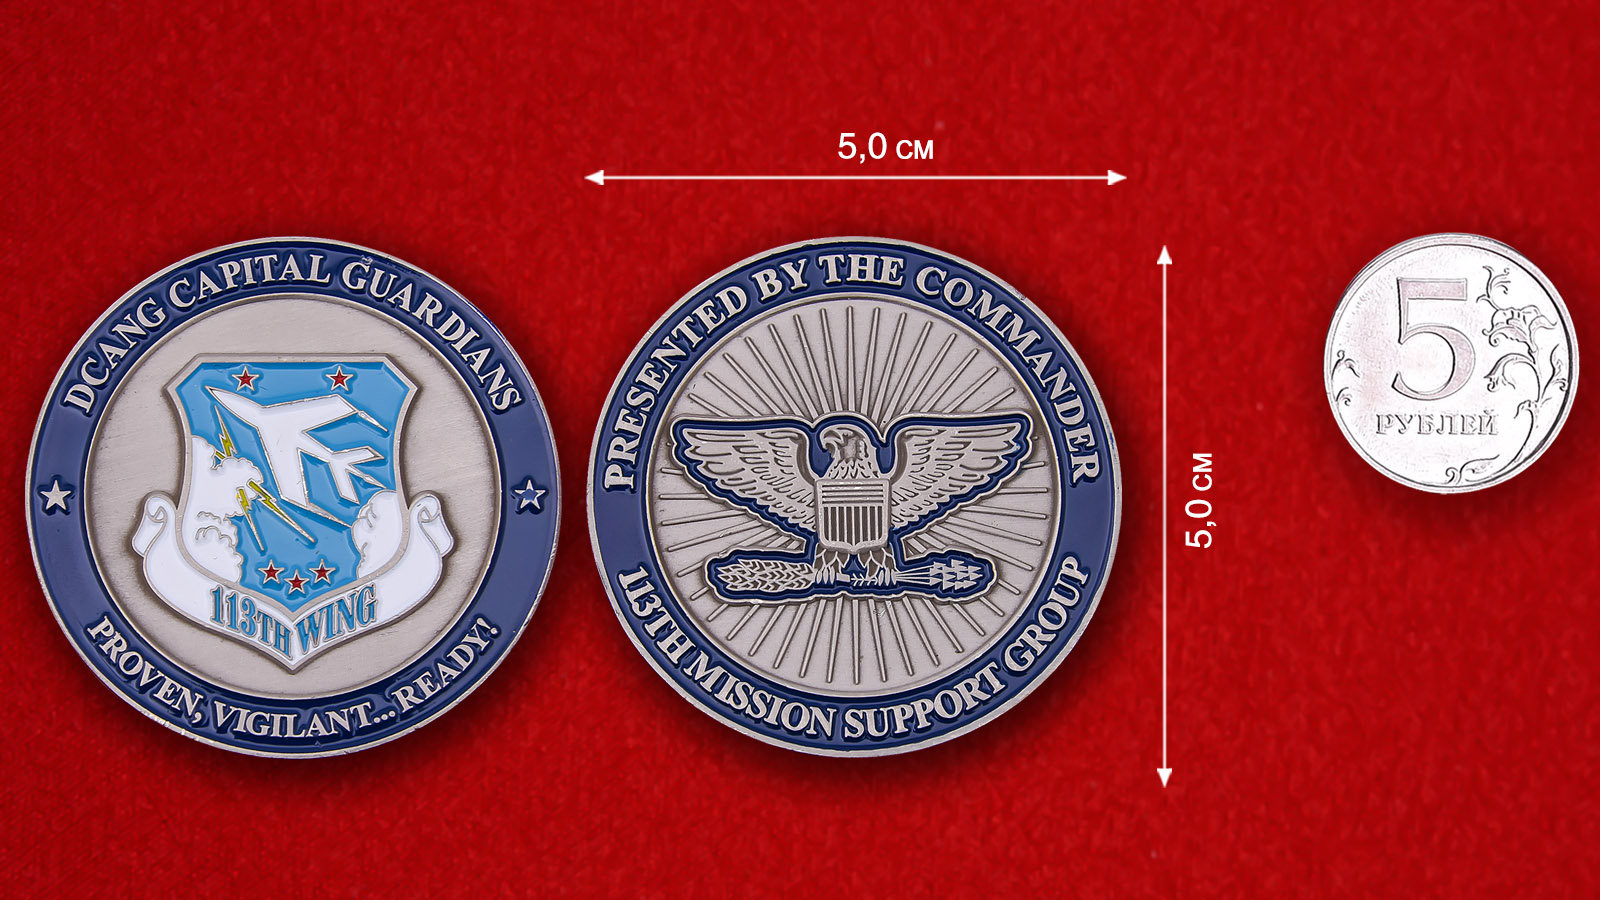 USAF 113th Wing Mission Support Group Challenge Coin